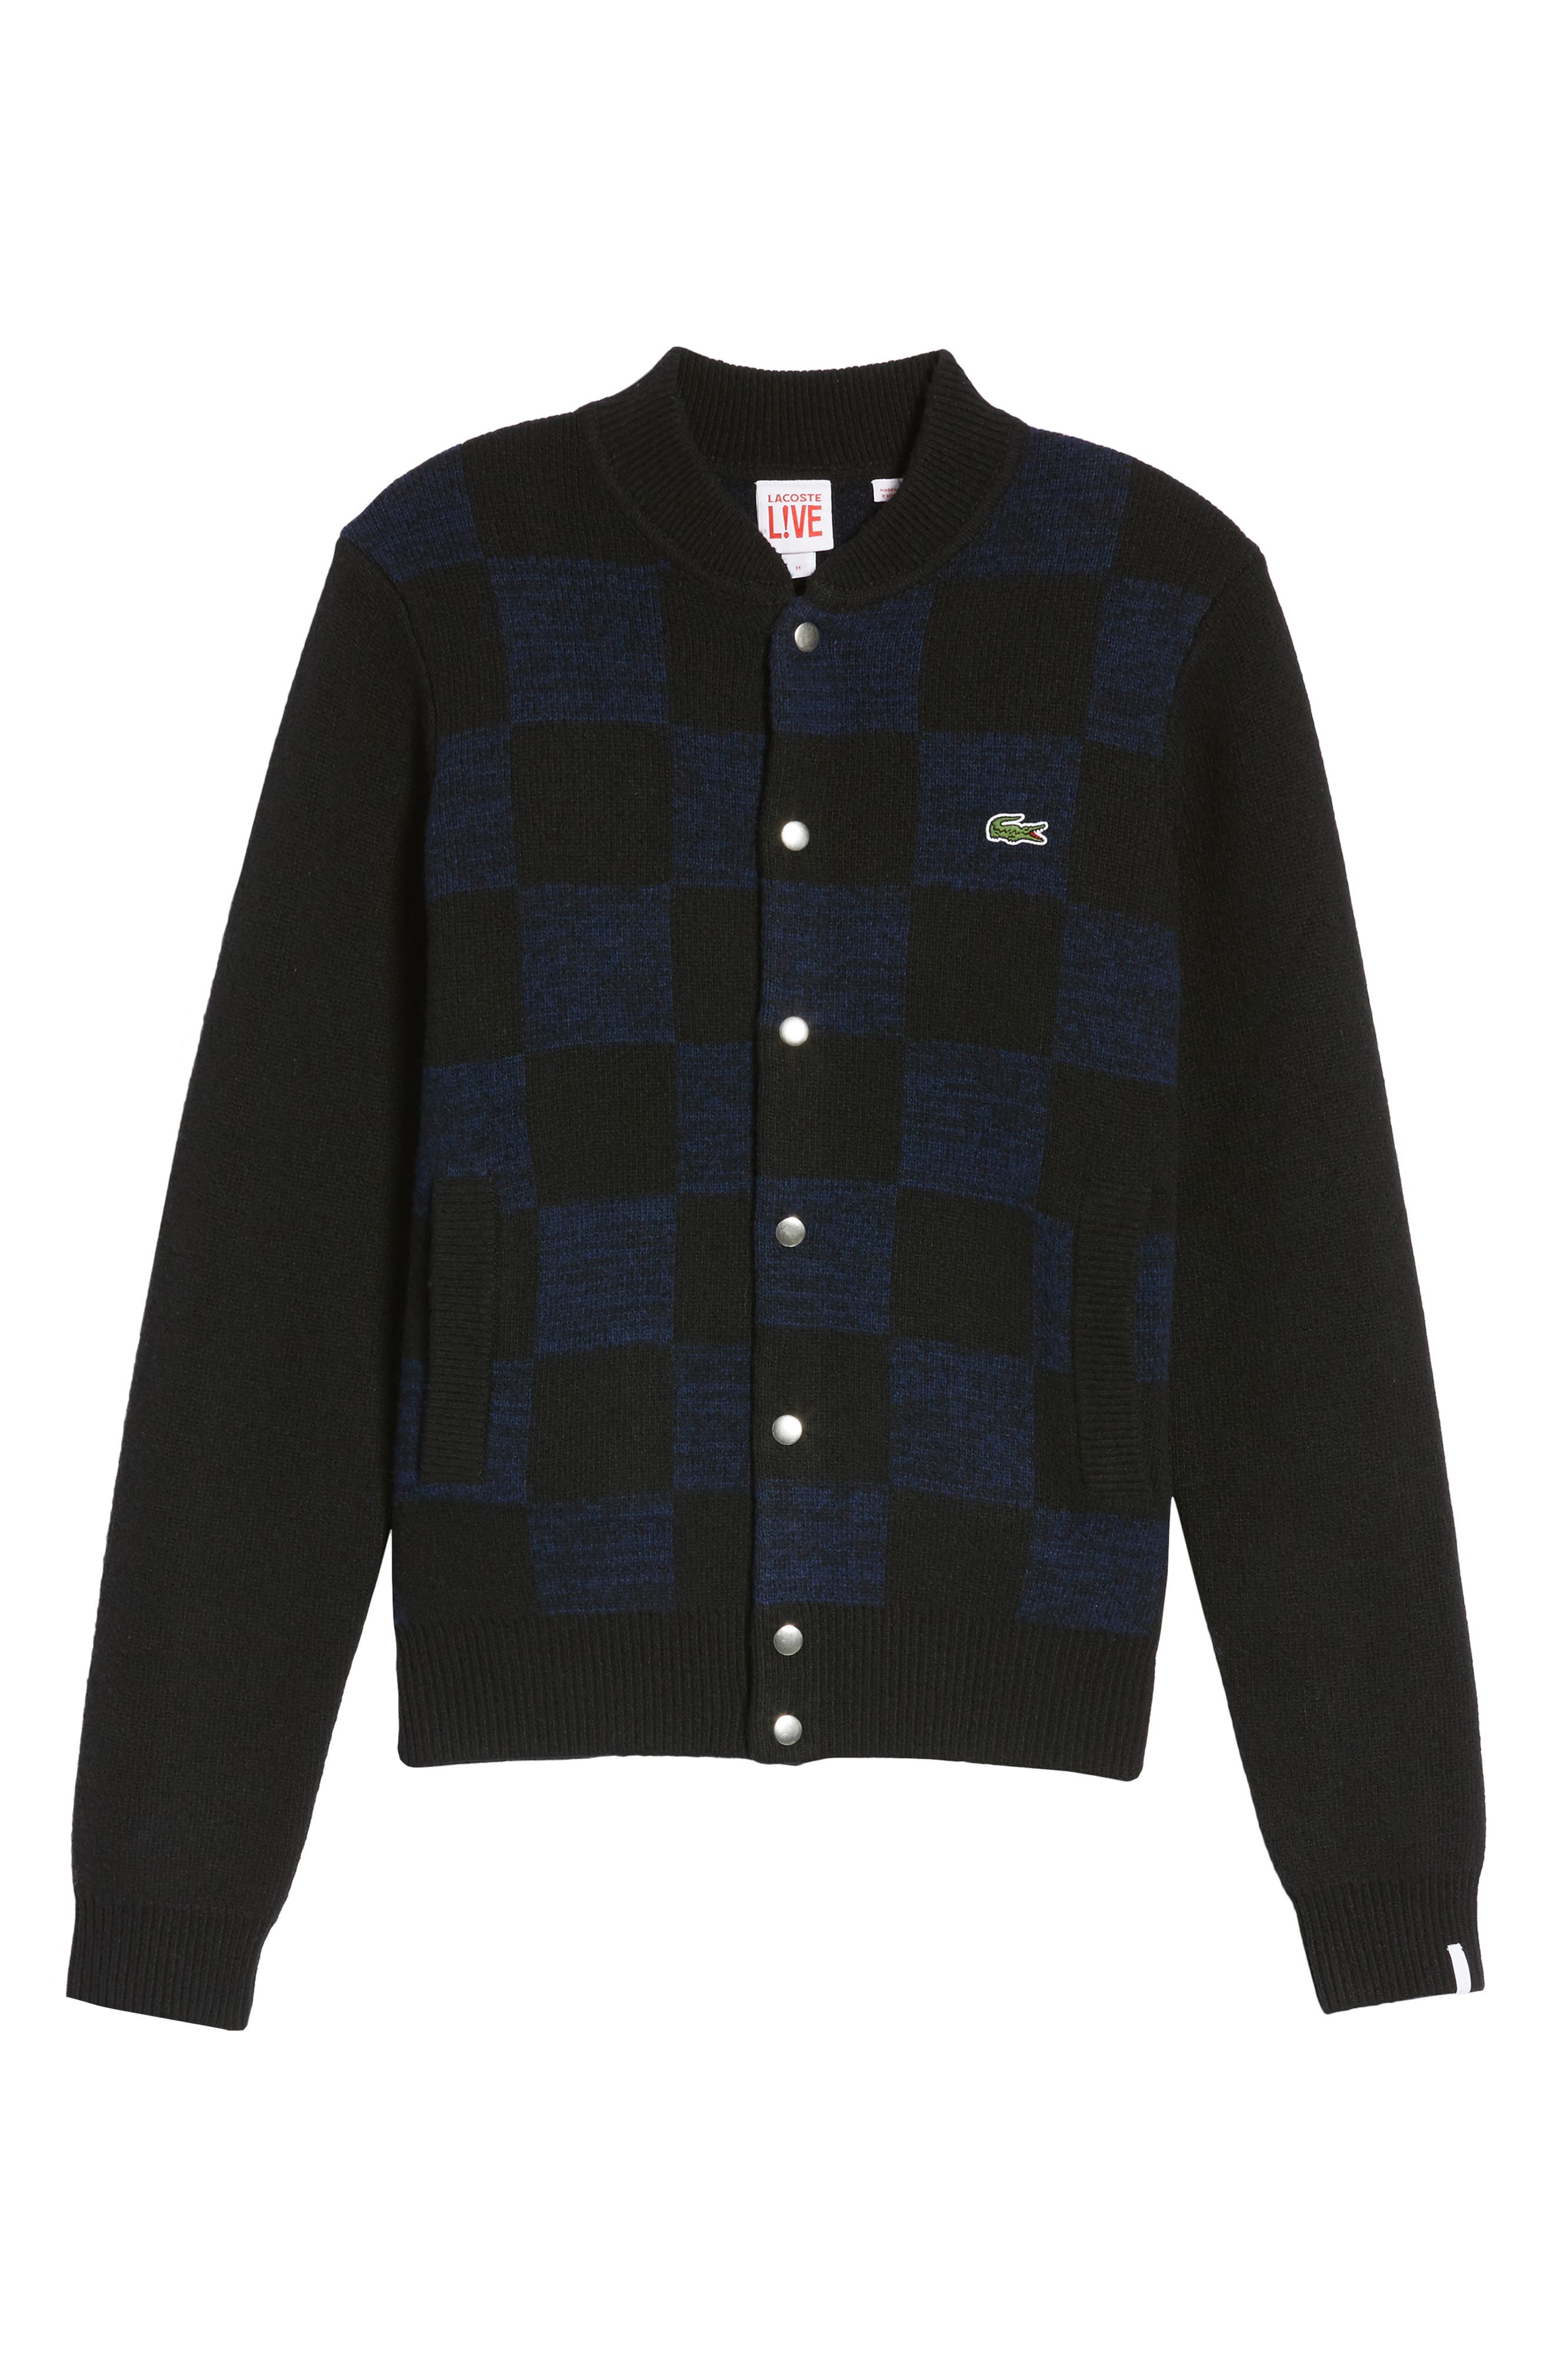 Double Face Check Sweater Jacket,                             Alternate thumbnail 6, color,                             006